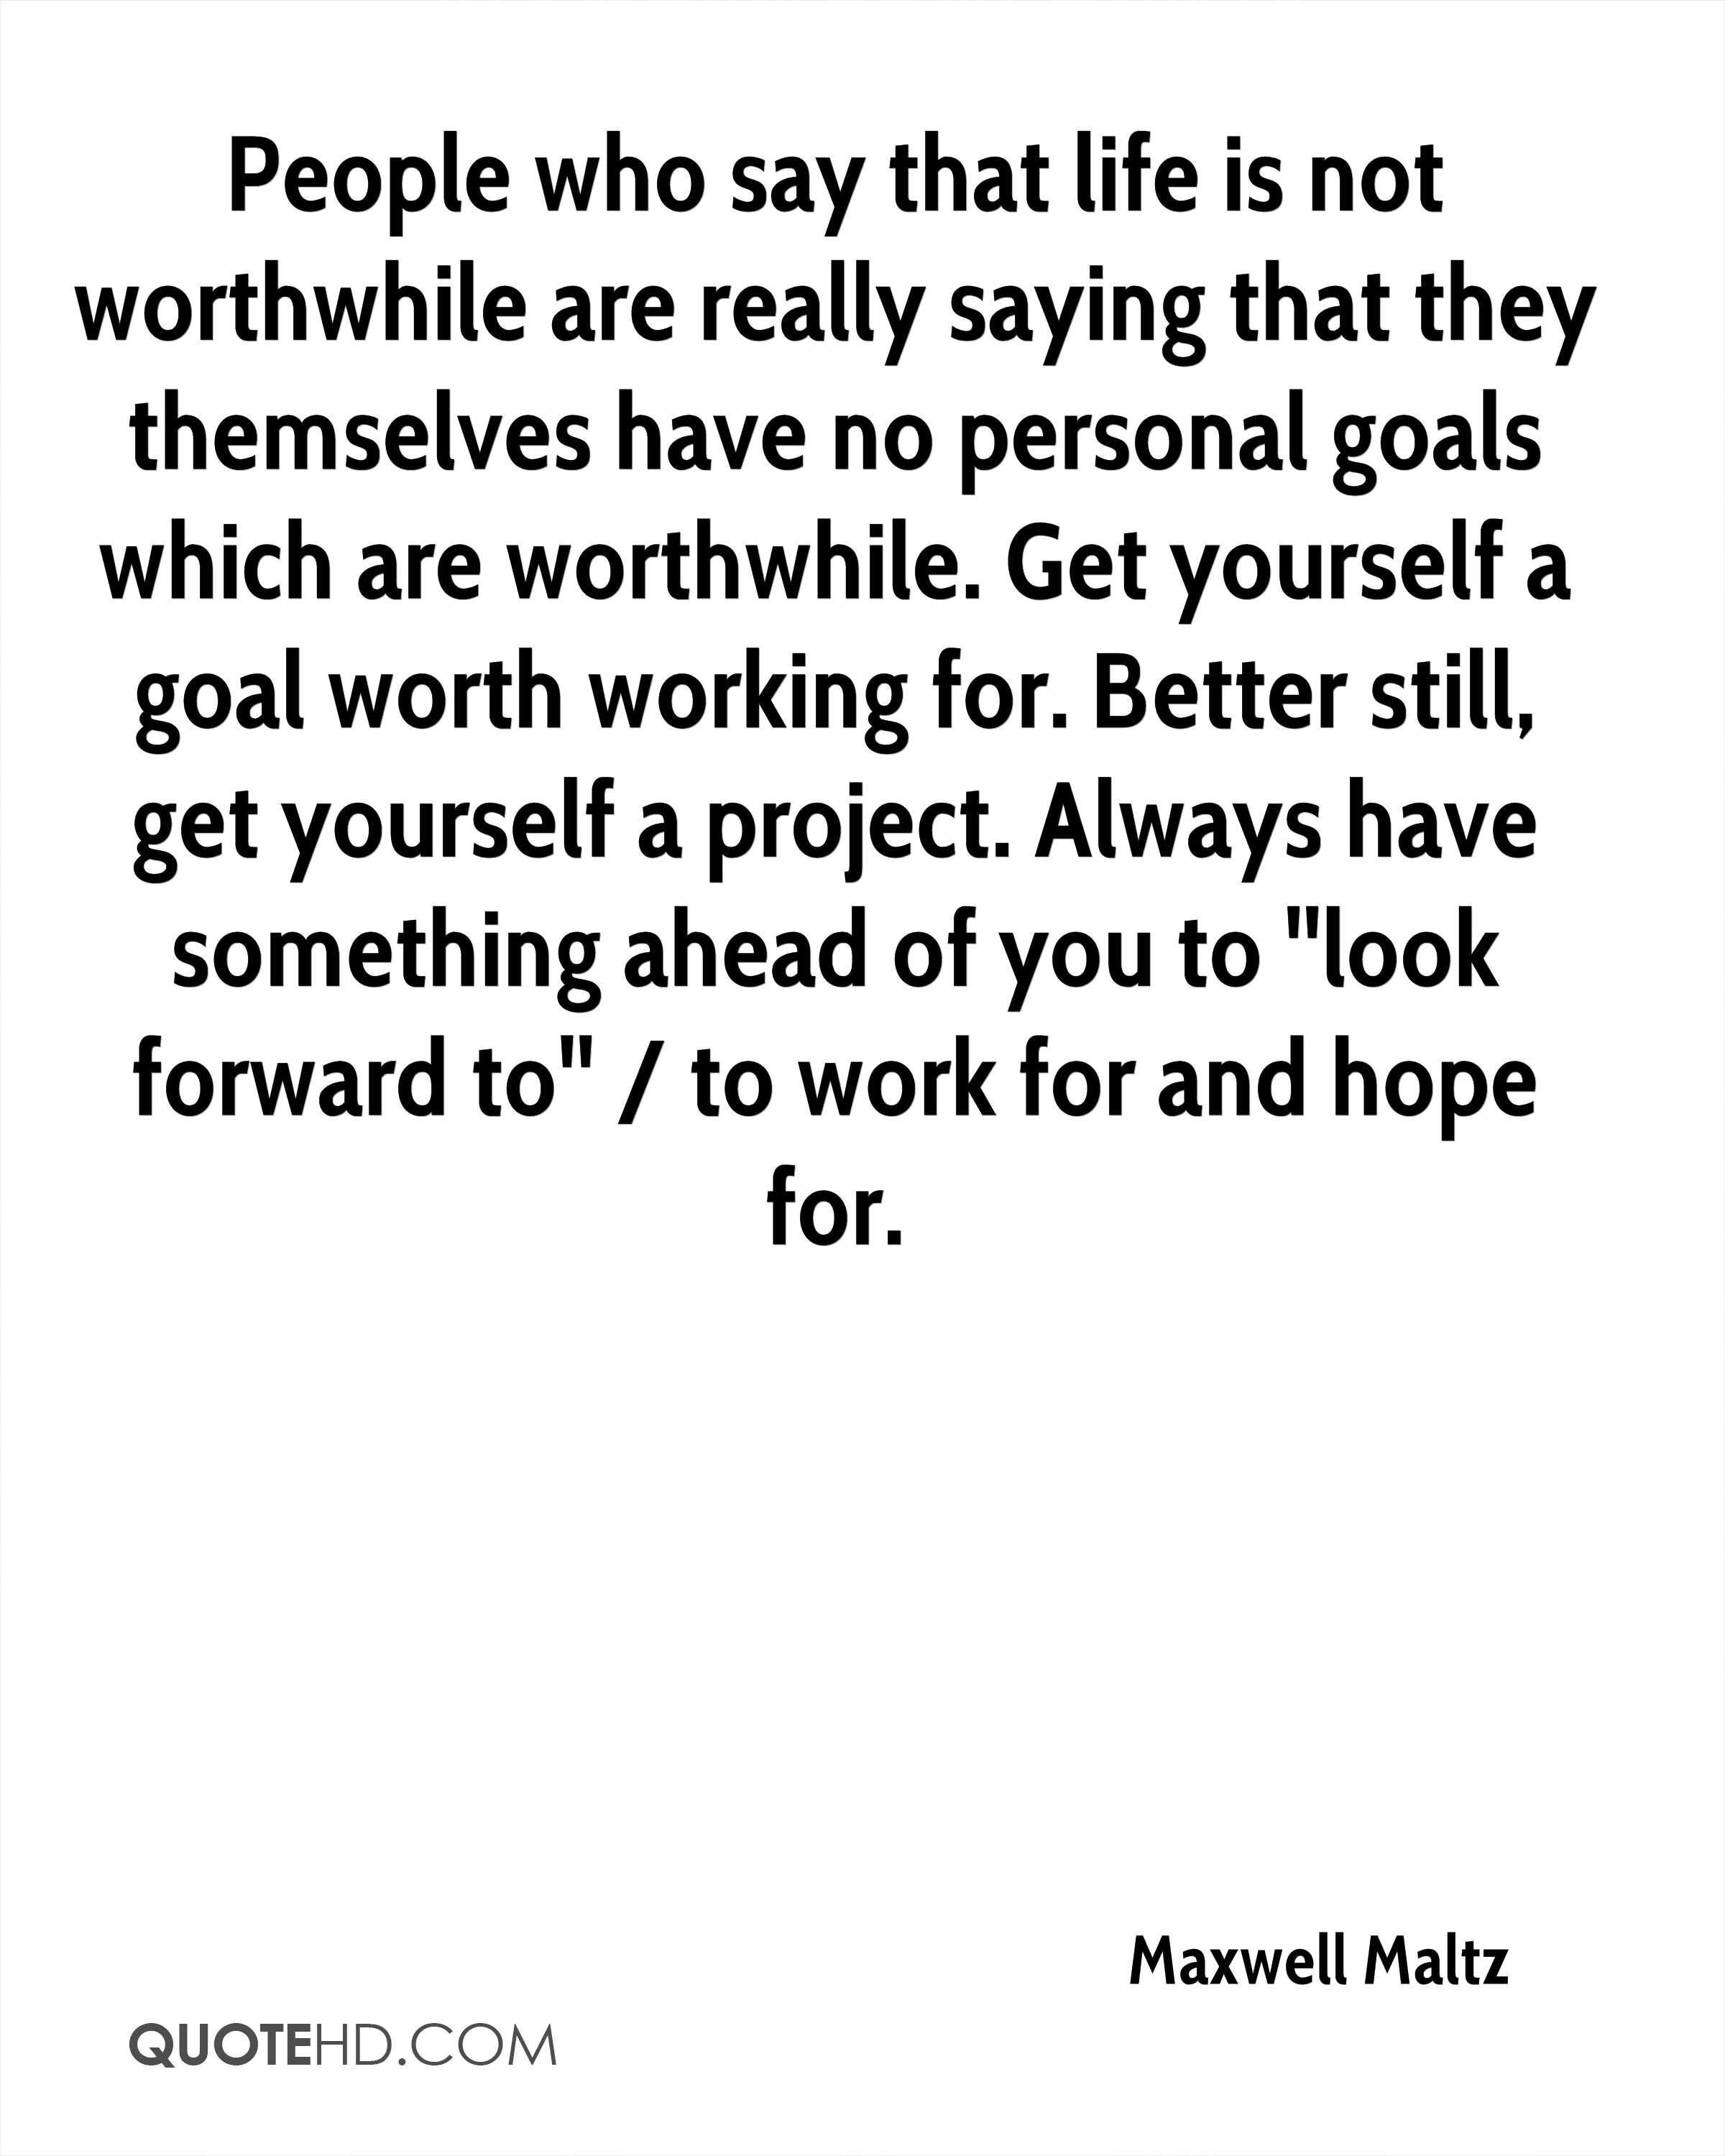 People who say that life is not worthwhile are really saying that they themselves have no personal goals which are worthwhile. Get yourself a goal worth working for. Better still, get yourself a project. Always have something ahead of you to ''look forward to'' / to work for and hope for.